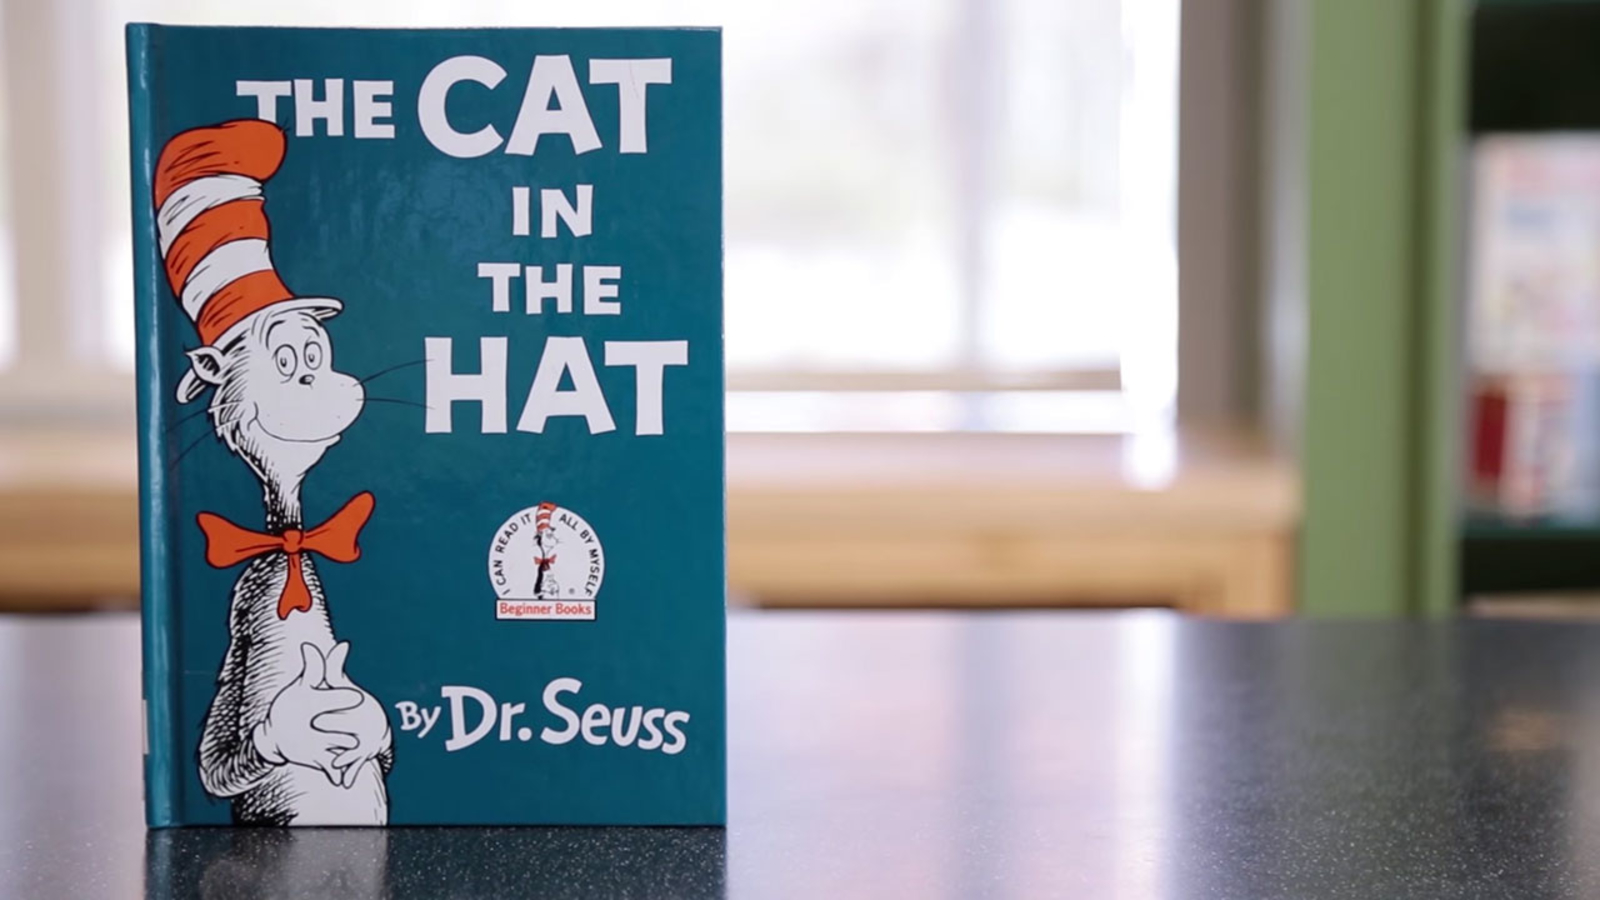 Fun facts about the late Dr. Seuss in honor of his 117th birthday